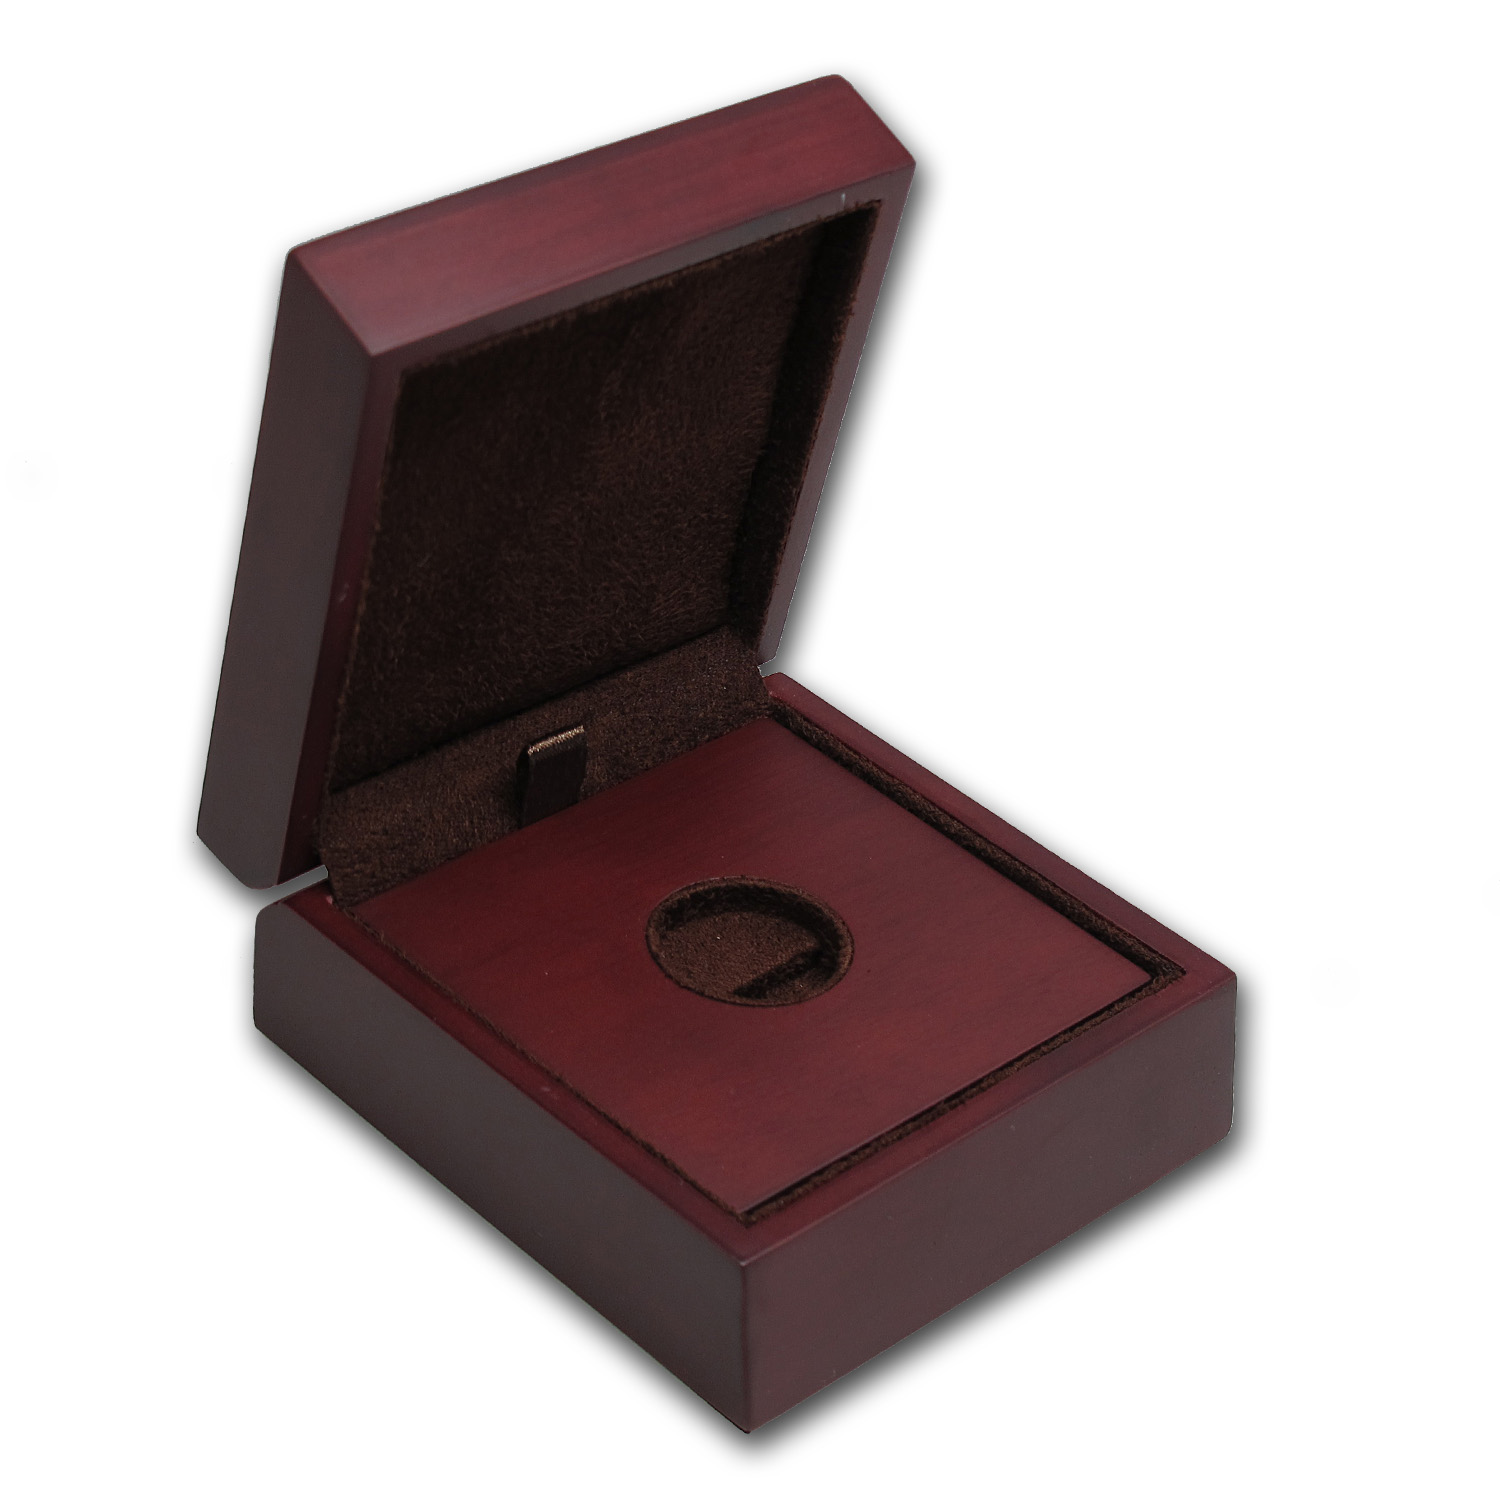 APMEX Wood Presentation Box - 1/4 oz Perth Gold Series 2